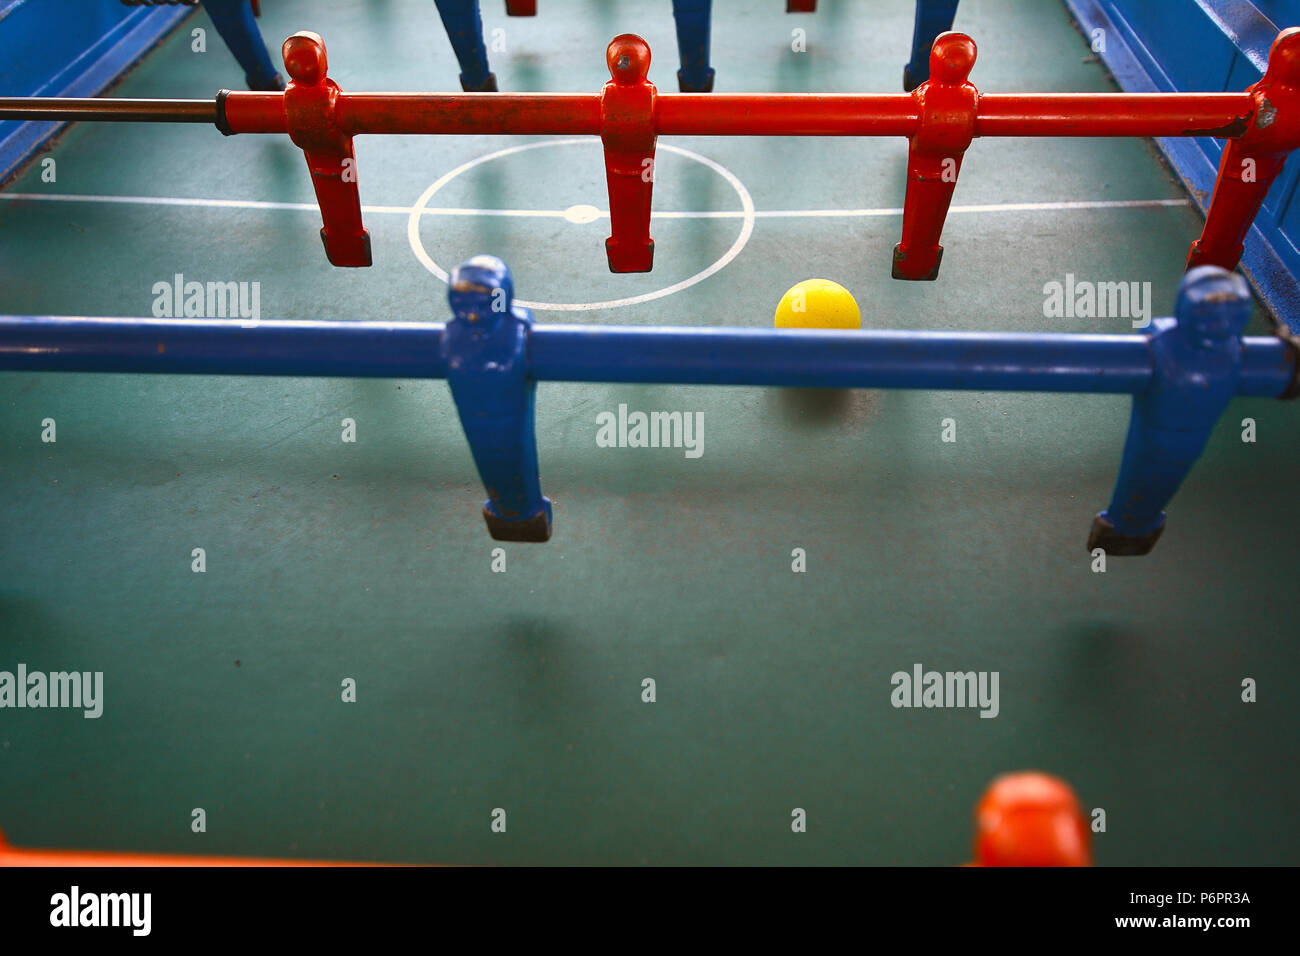 Foosball. Soccer table game, blue foosball player. Toy sport game concept. - Stock Image